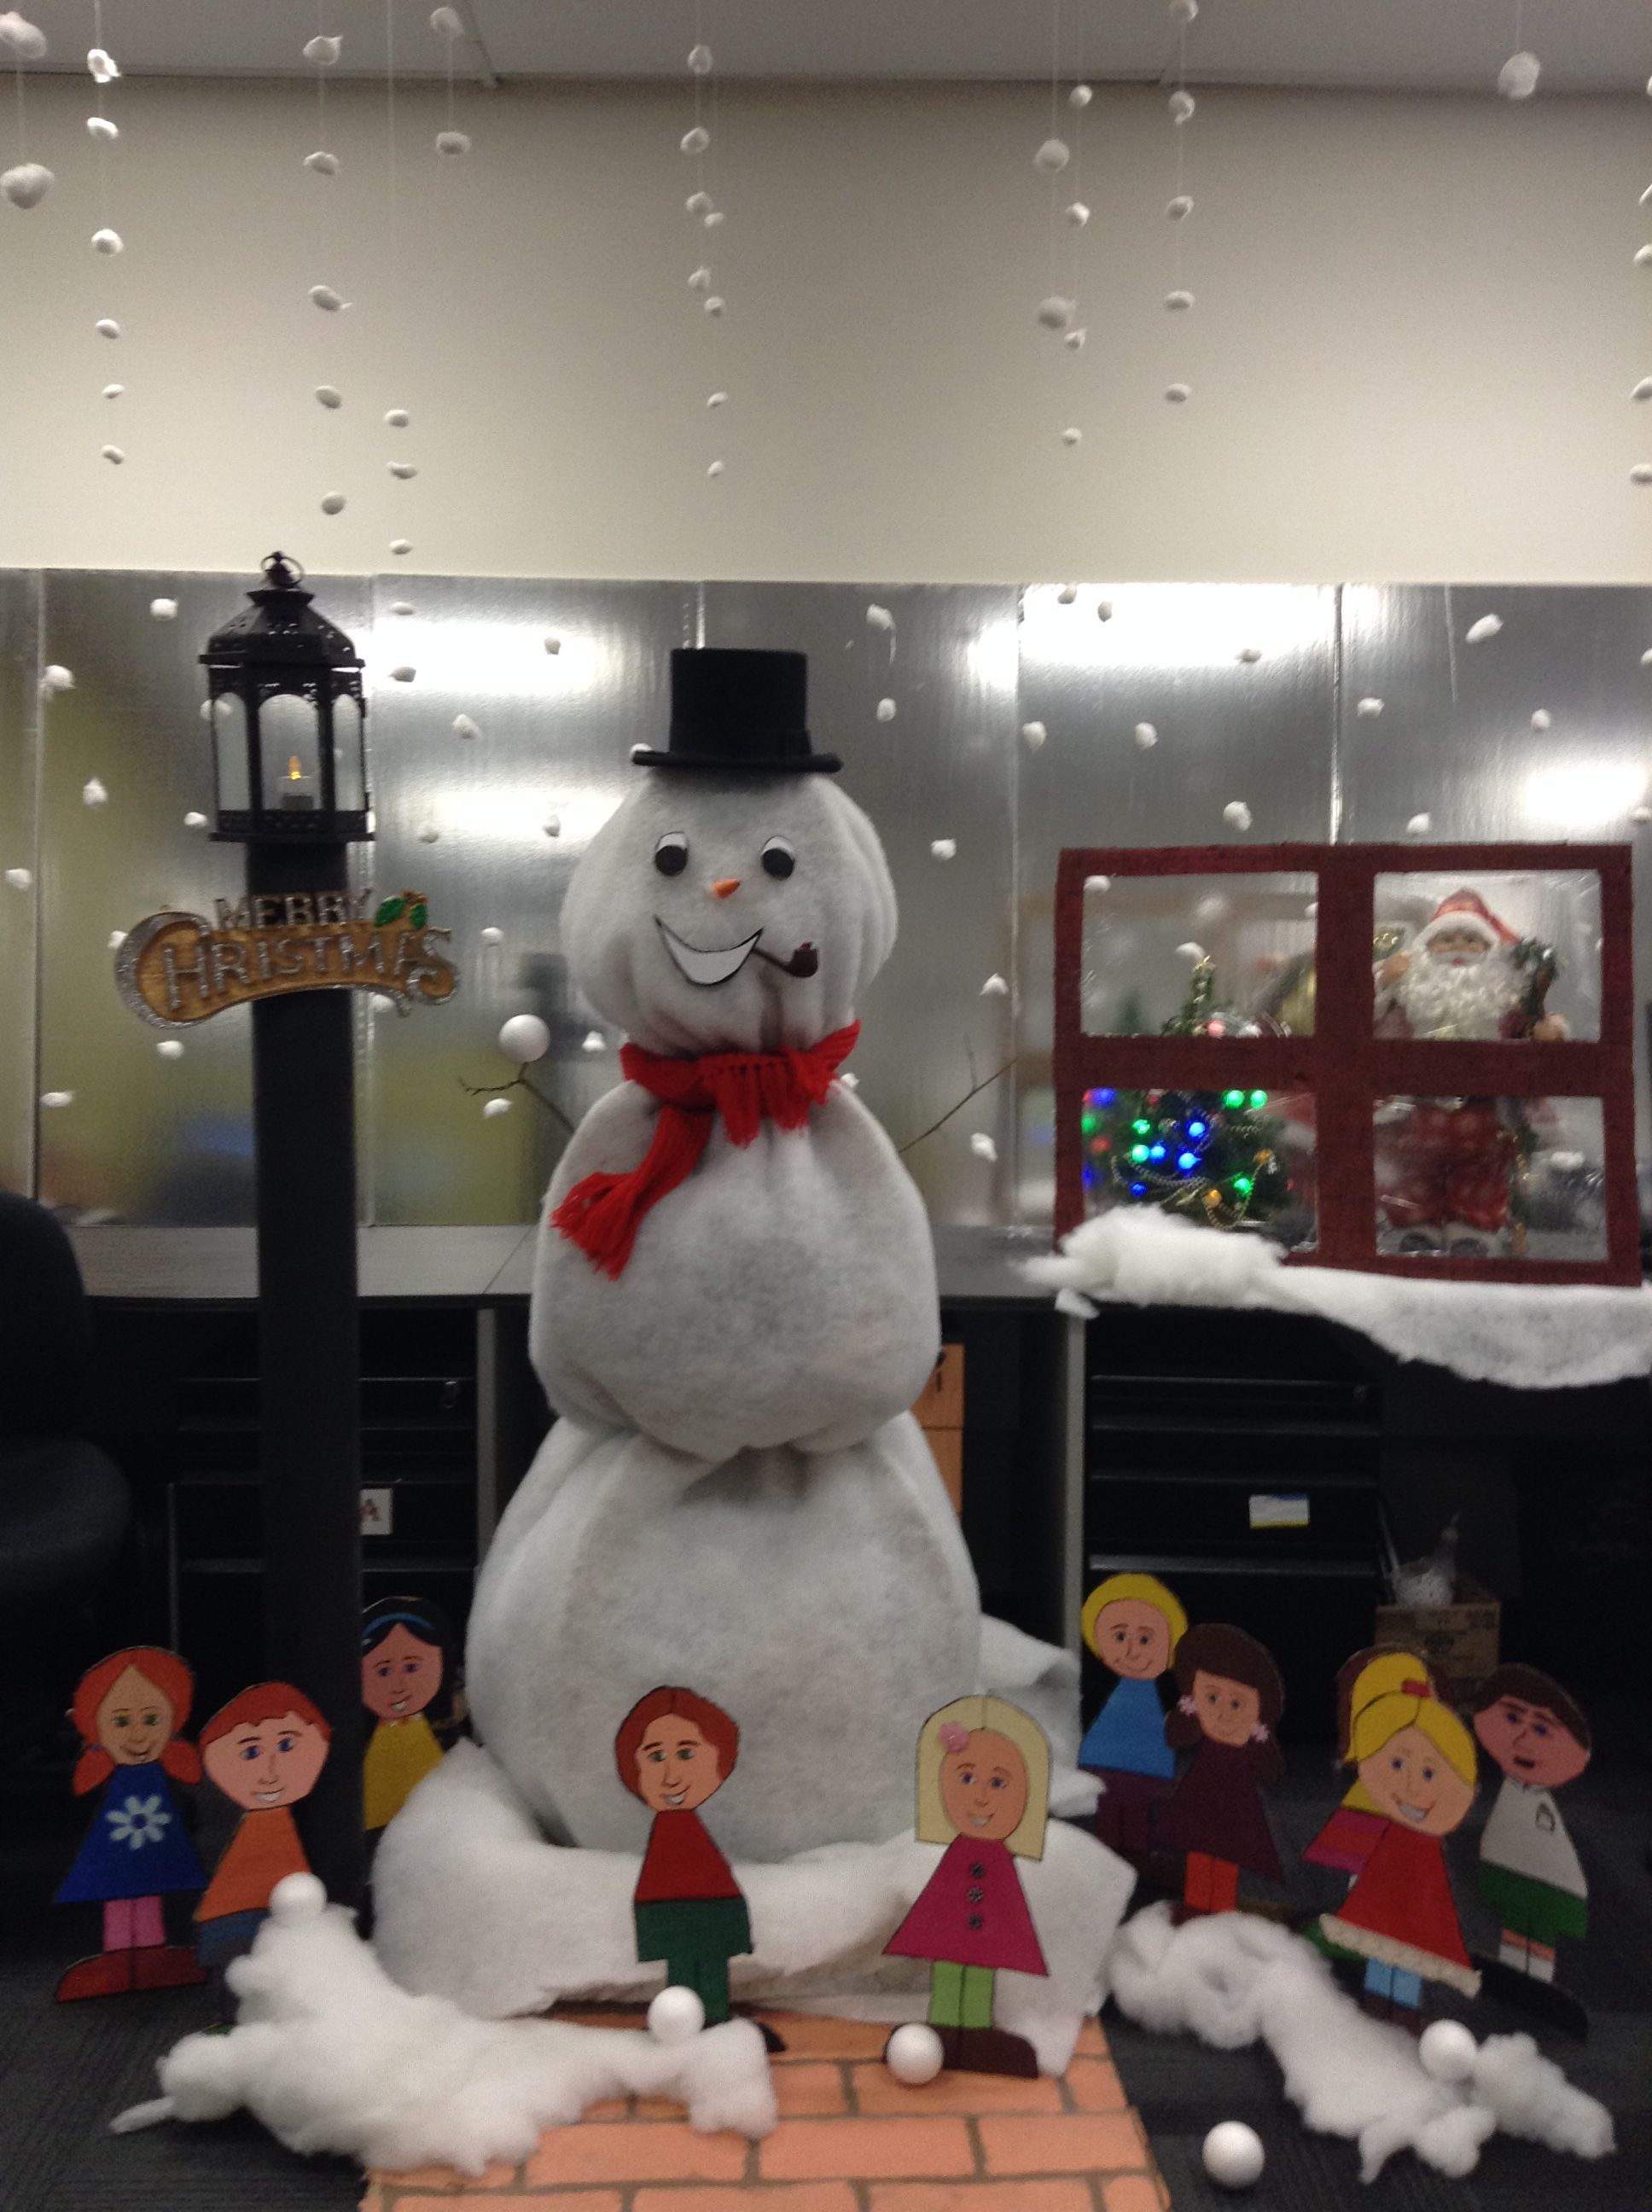 frosty the snowman office decorations xmas pinterest office